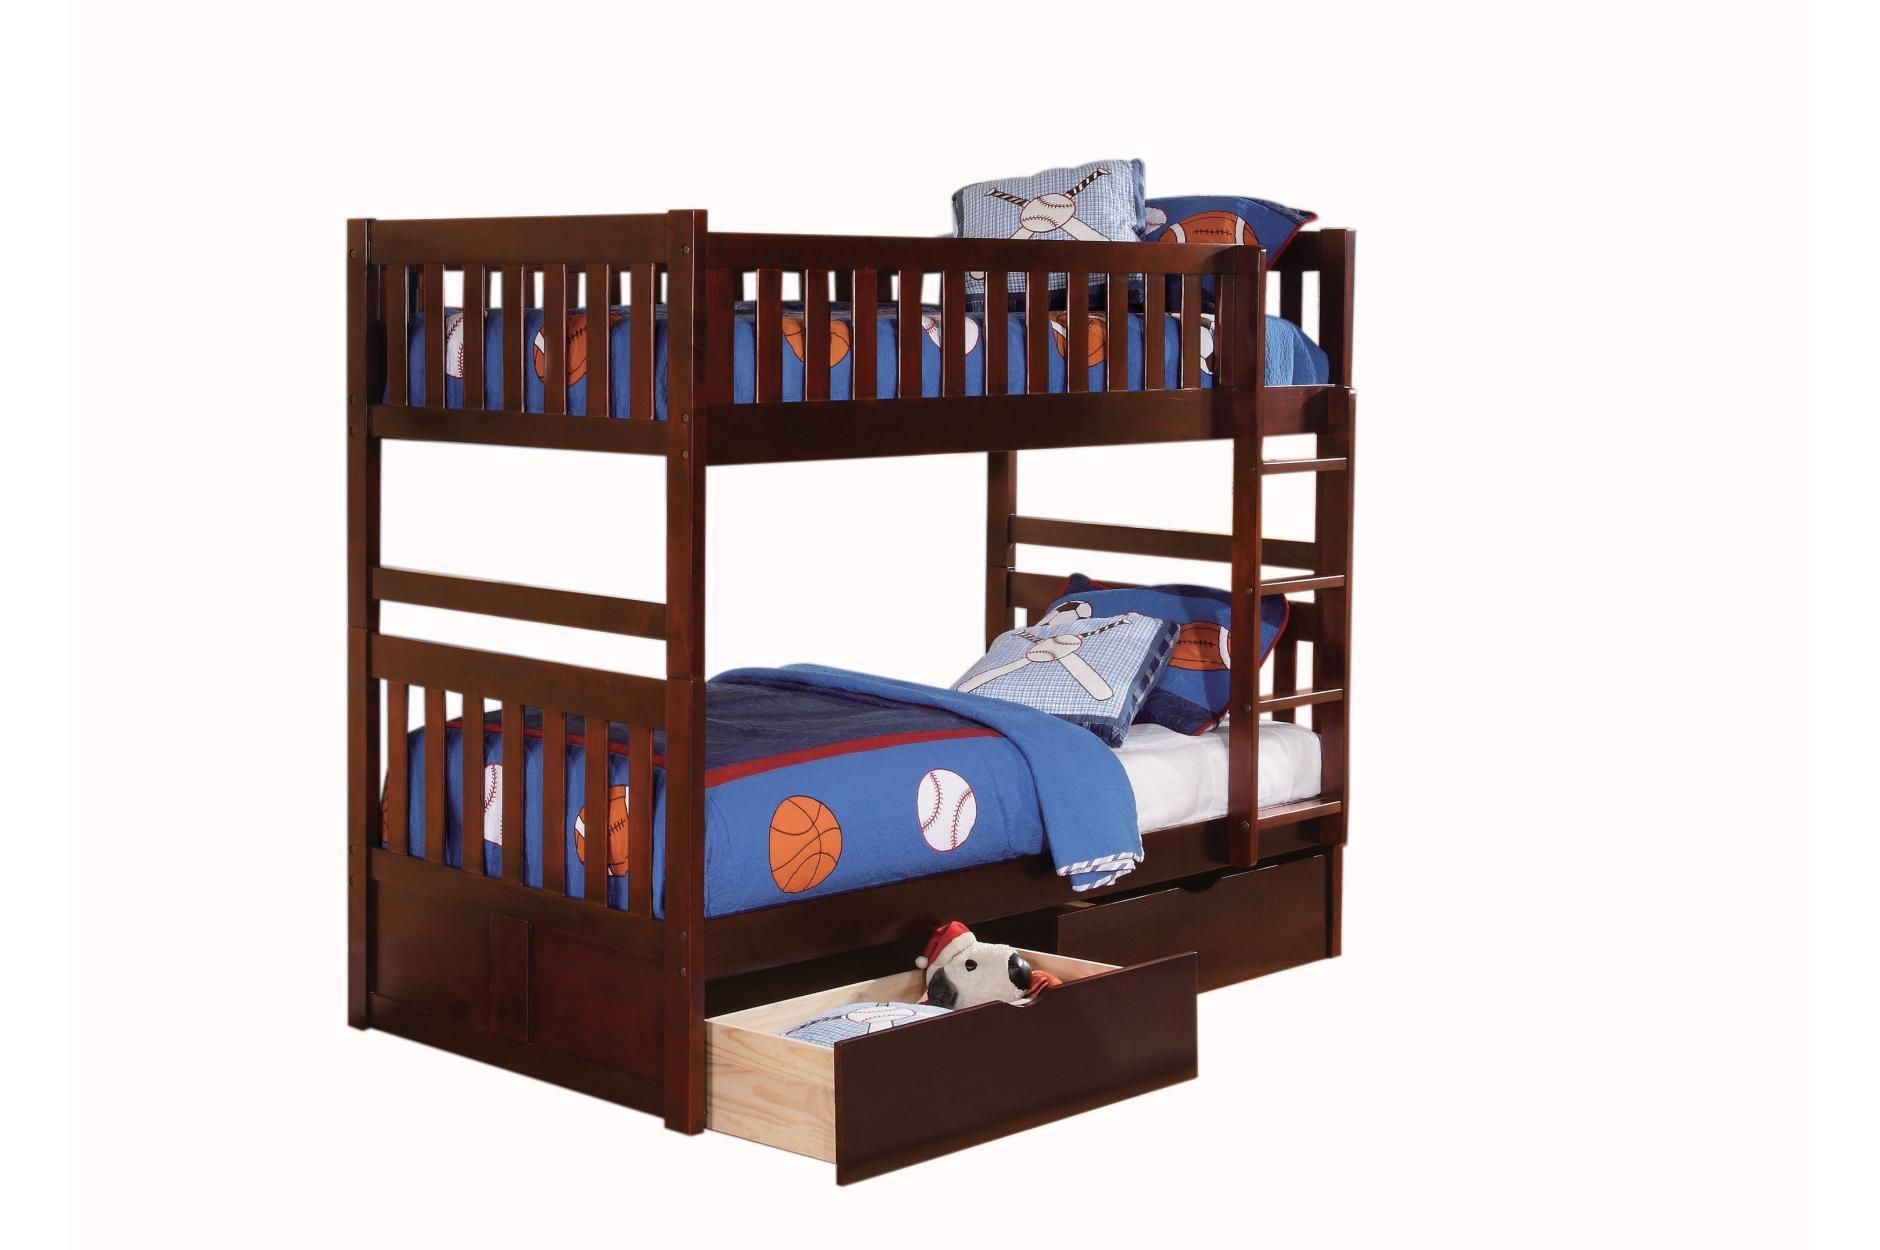 Dark Cherry Wood Kids Twintwin Bunk Bed